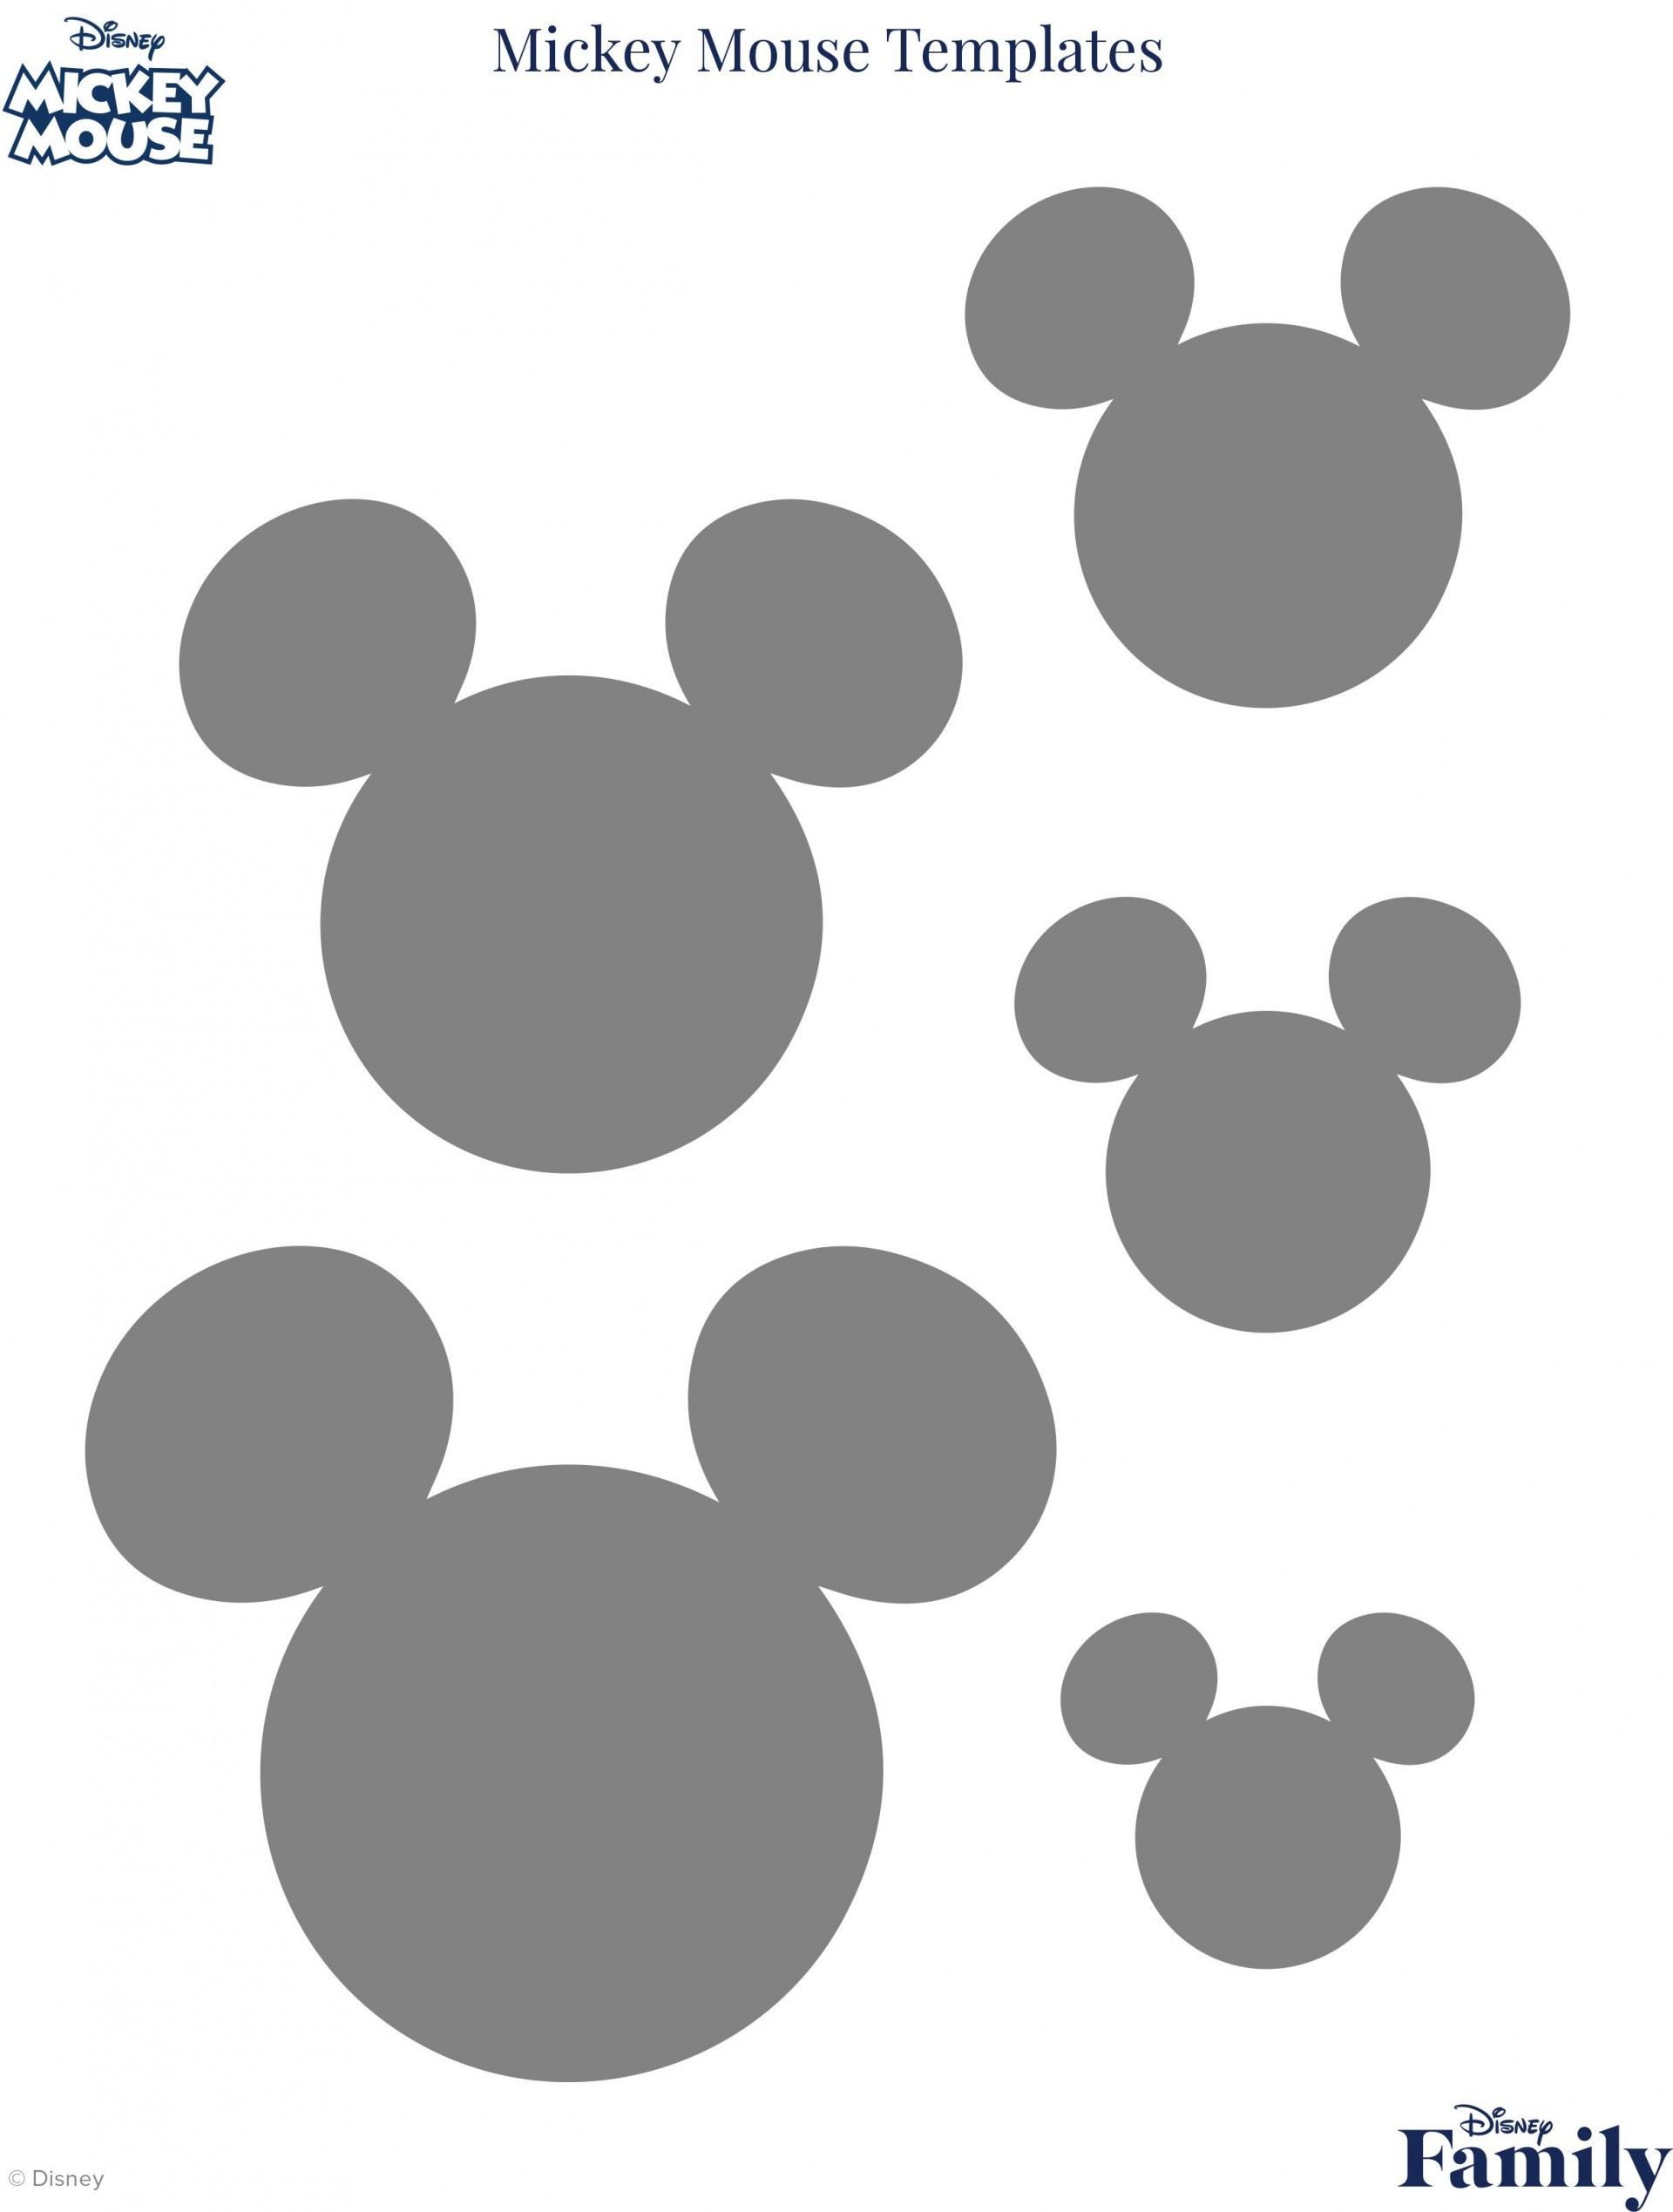 007 Outstanding Mickey Mouse Face Template For Cake Sample  Printable1920